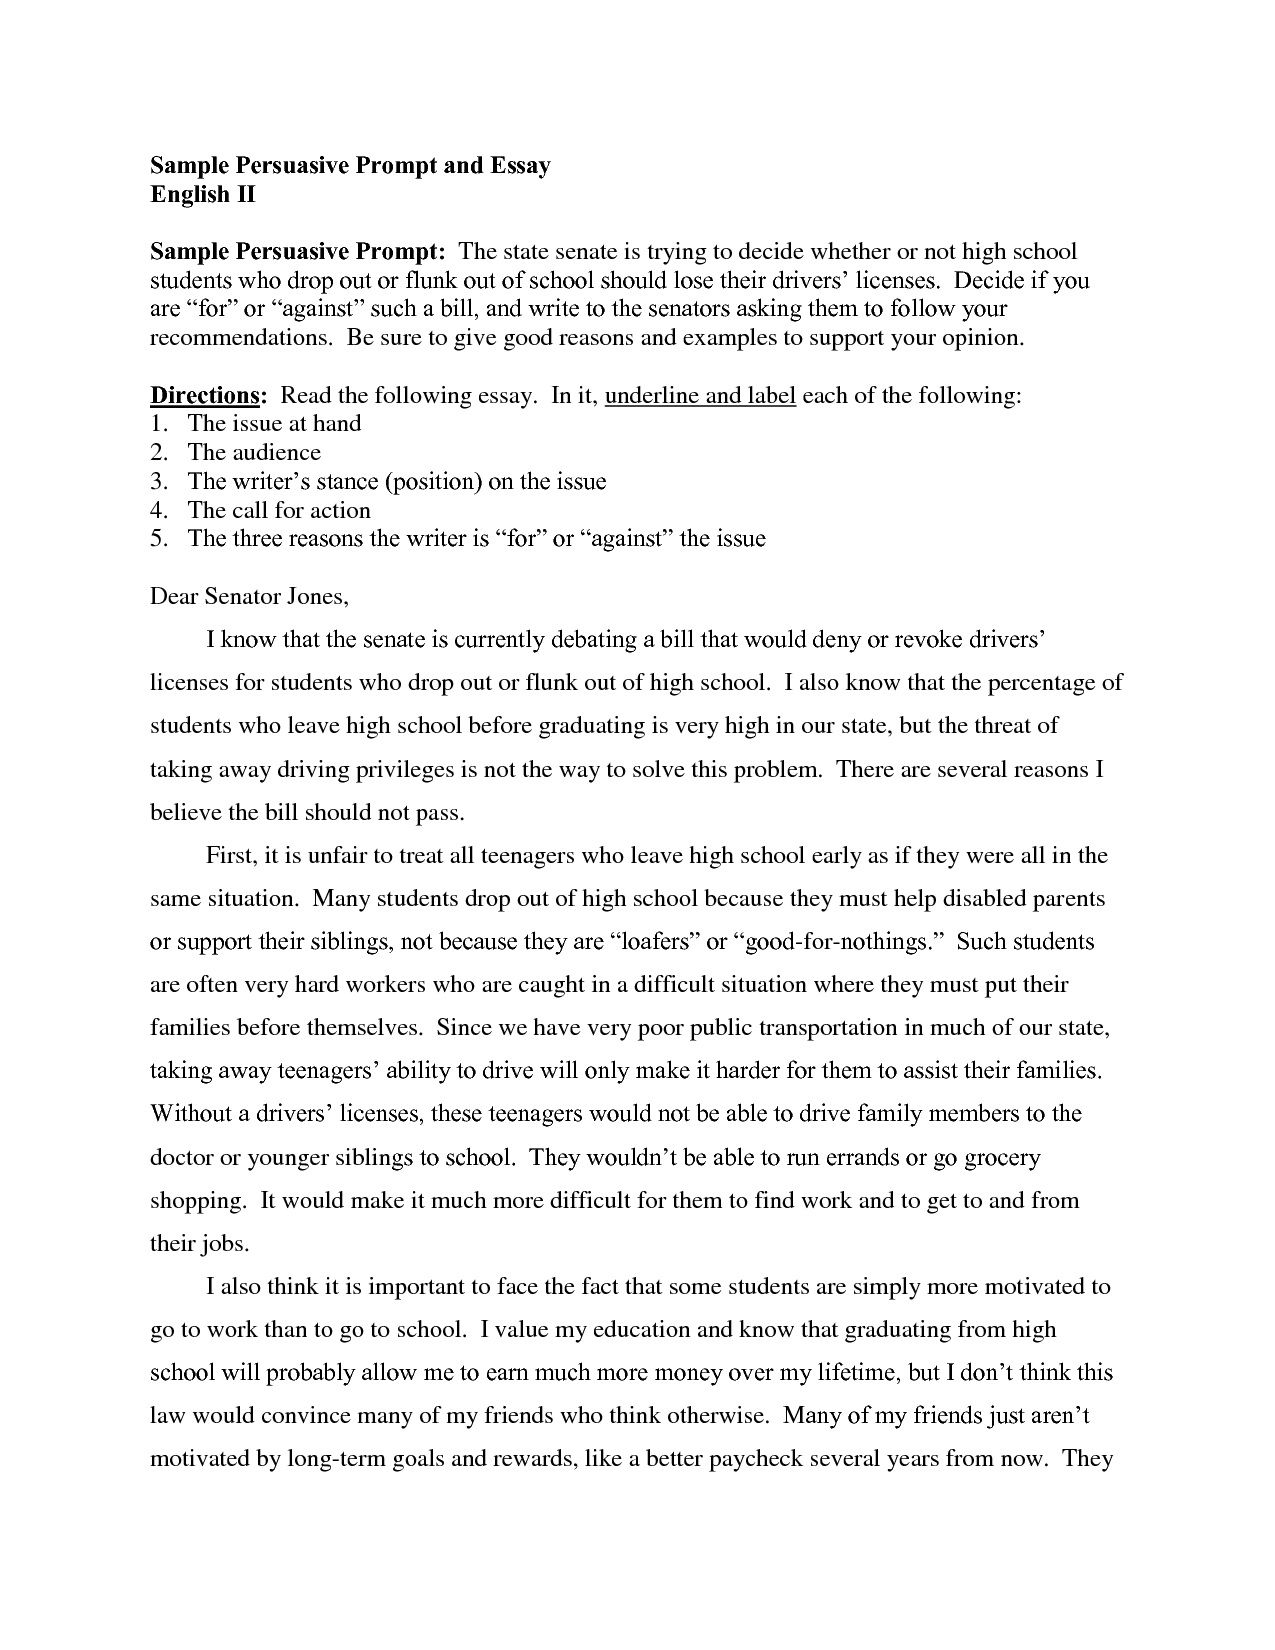 Essay About High School  Health And Fitness Essay also Essay Writing High School Samples Of Persuasive Essays For High School Students  Essay About Healthy Diet